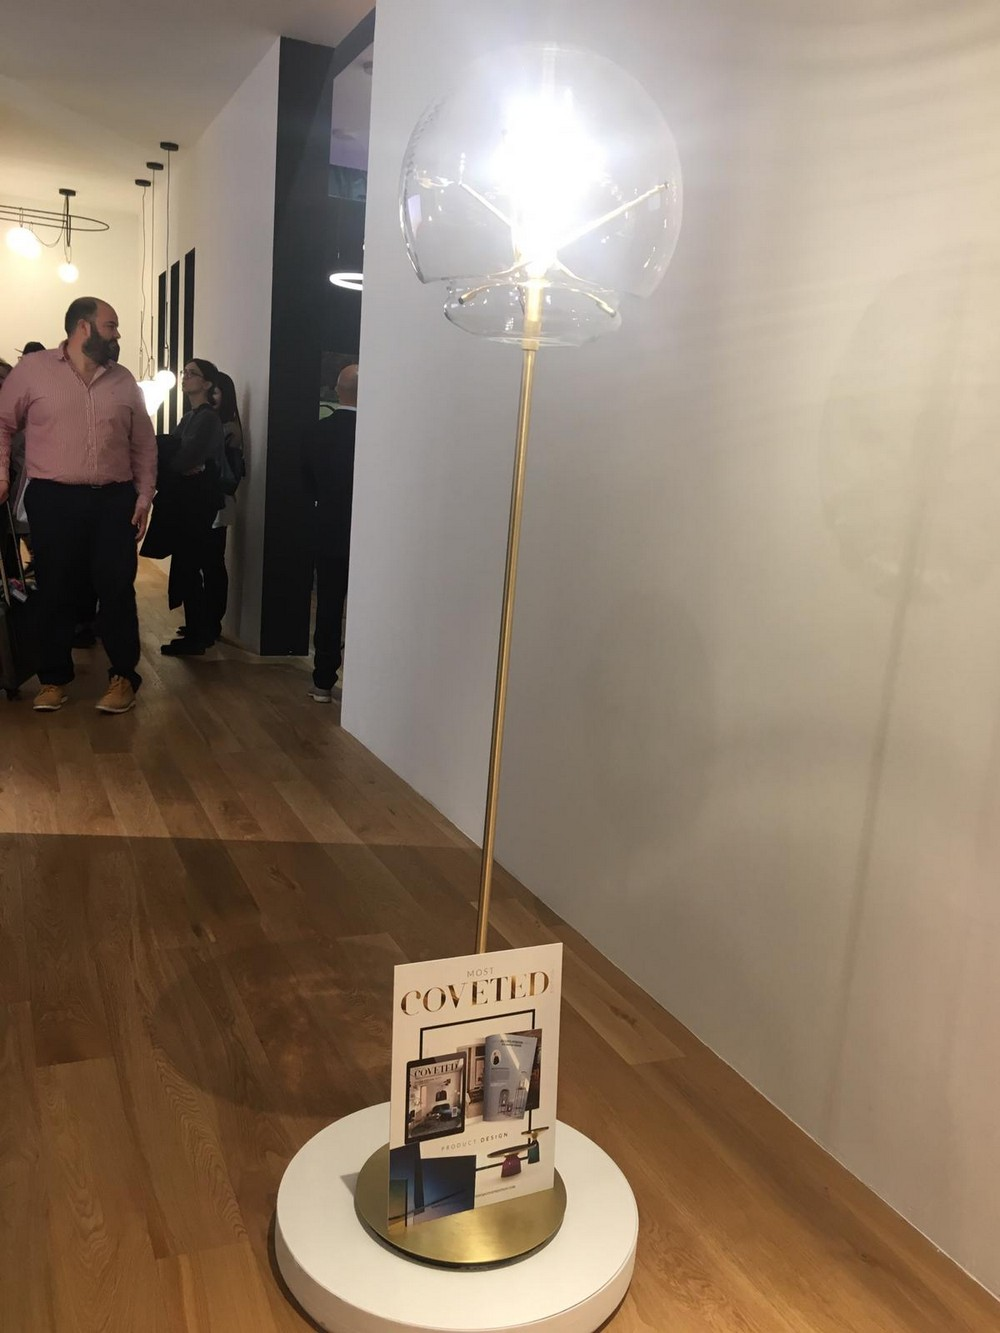 CovetED Awards Highlights The Best Of Salone Del Mobile Milano 2019 coveted awards CovetED Awards Highlights The Best Of Salone Del Mobile Milano 2019 CovetED Awards Highlights The Best Of Salone Del Mobile Milano 2019 12